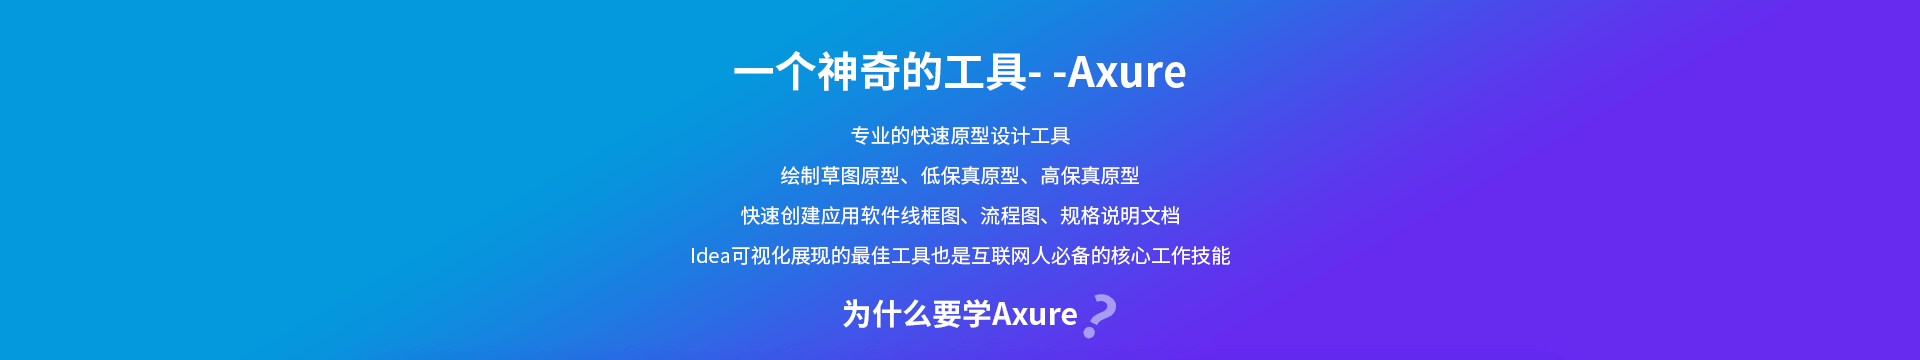 axure课程web_01.png